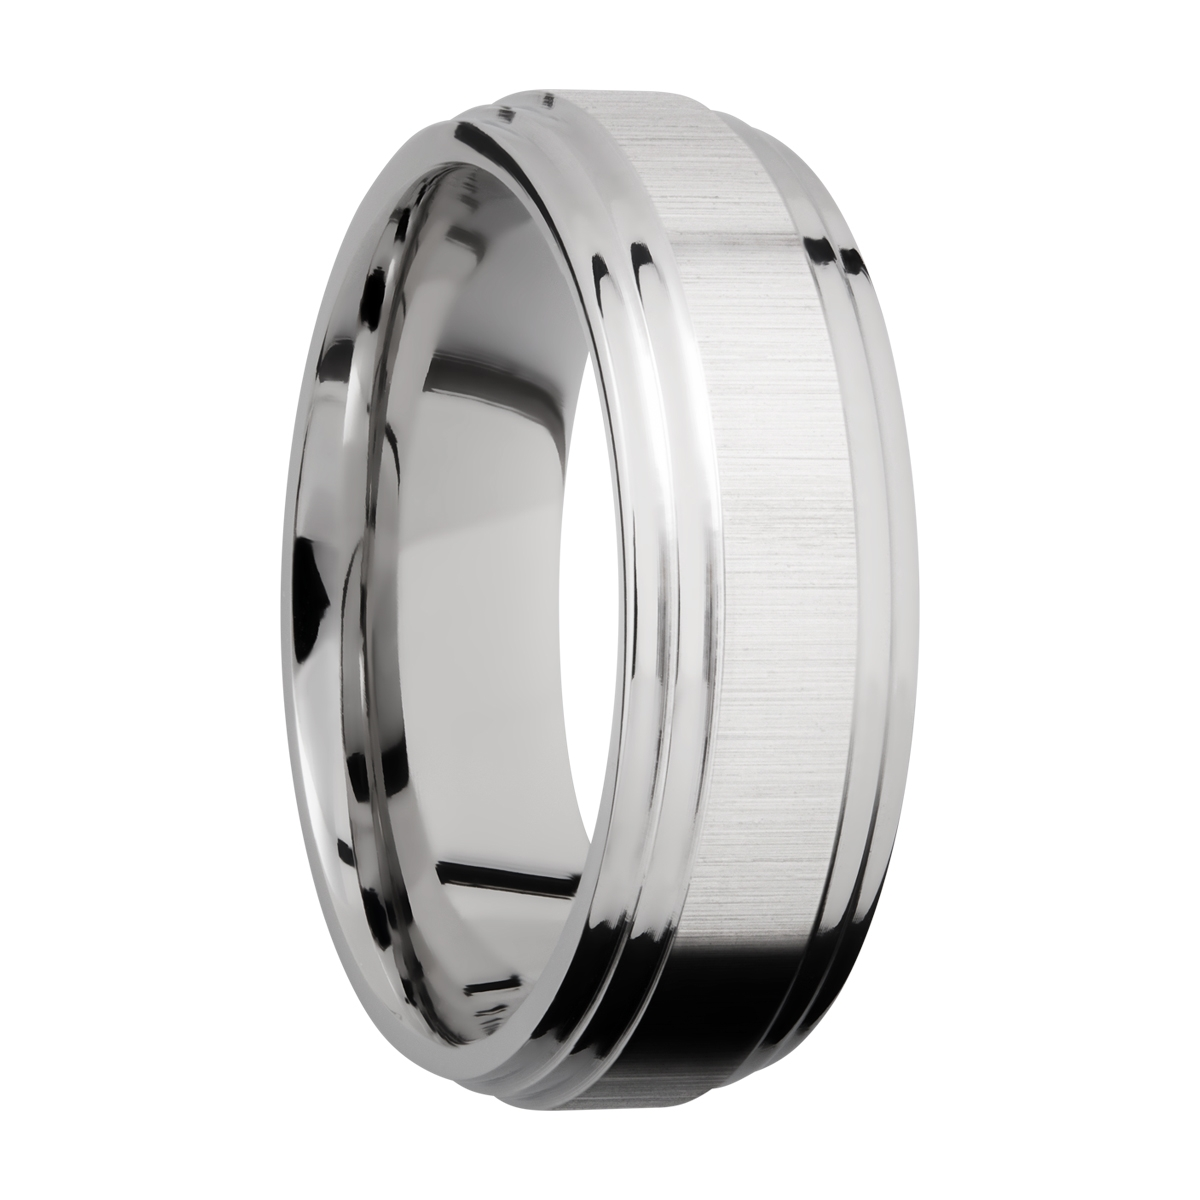 Lashbrook CC8F2S Cobalt Chrome Wedding Ring or Band Alternative View 1